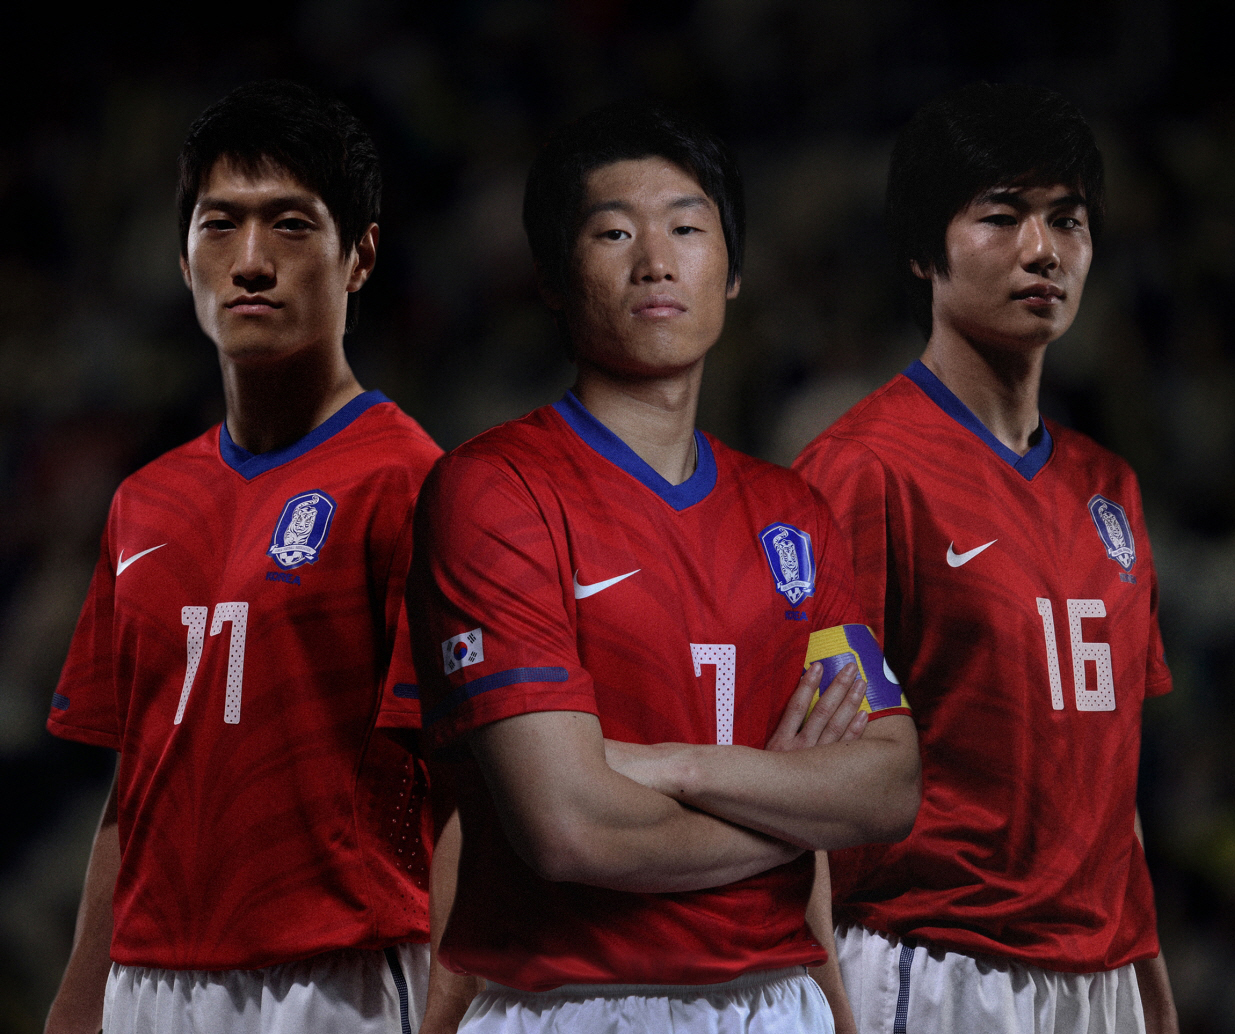 The decision is final. Park Ji-sung, middle, will not be teaming up with Ki Sung-yeung and Lee Chung-young again. (Korea Times file)